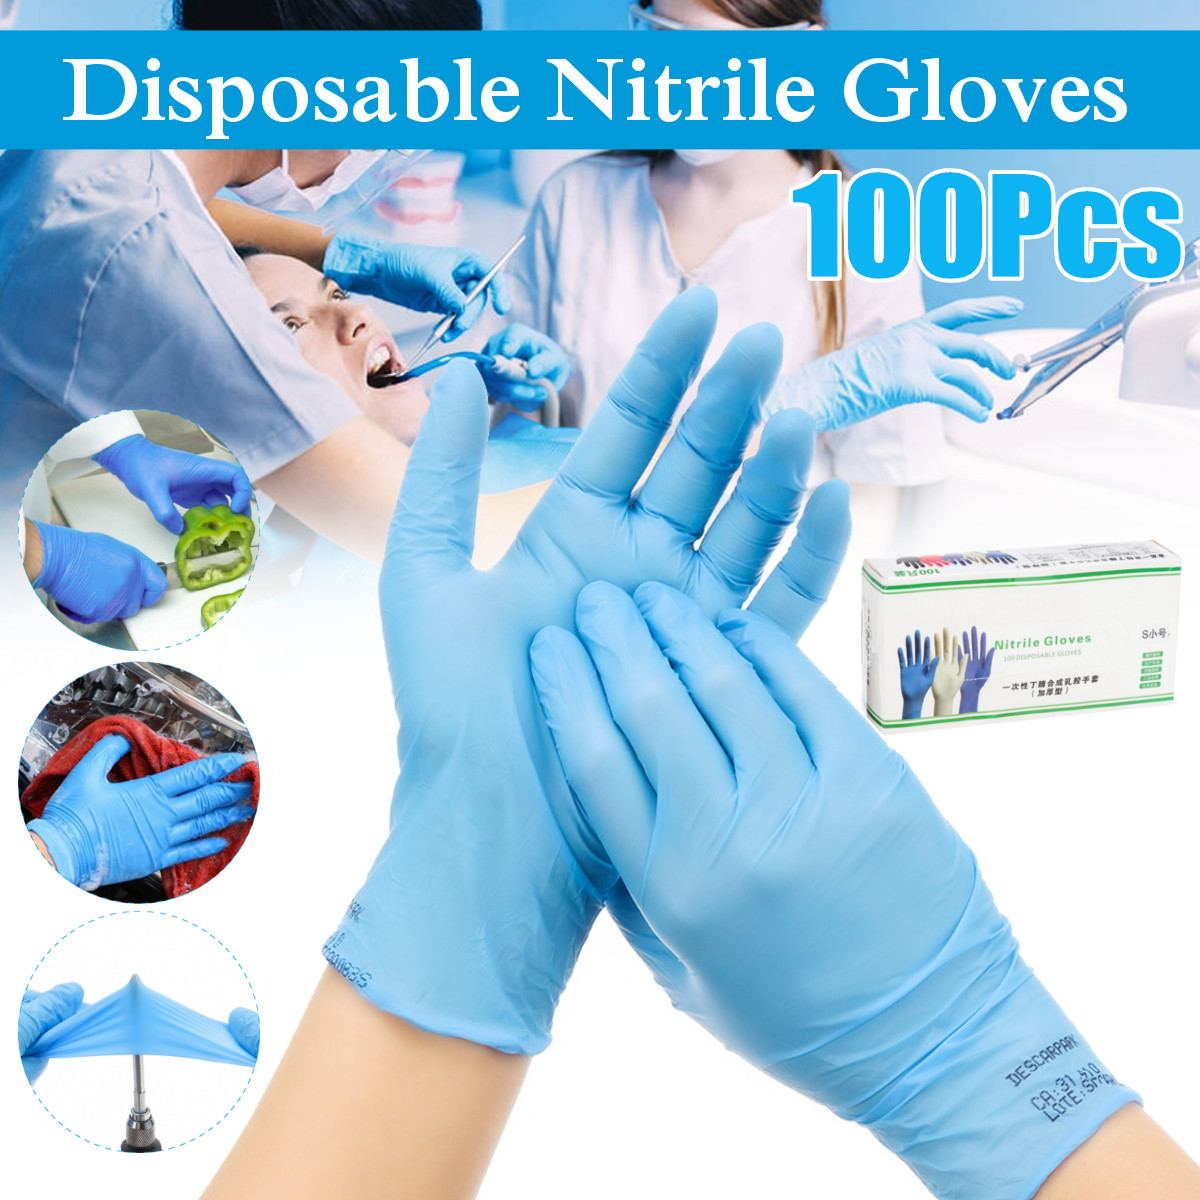 100Pcs/box Household Cleaning Washing Disposable Mechanic Gloves Blue Nitrile Laboratory Nail Art Anti-Static Gloves 3 Size